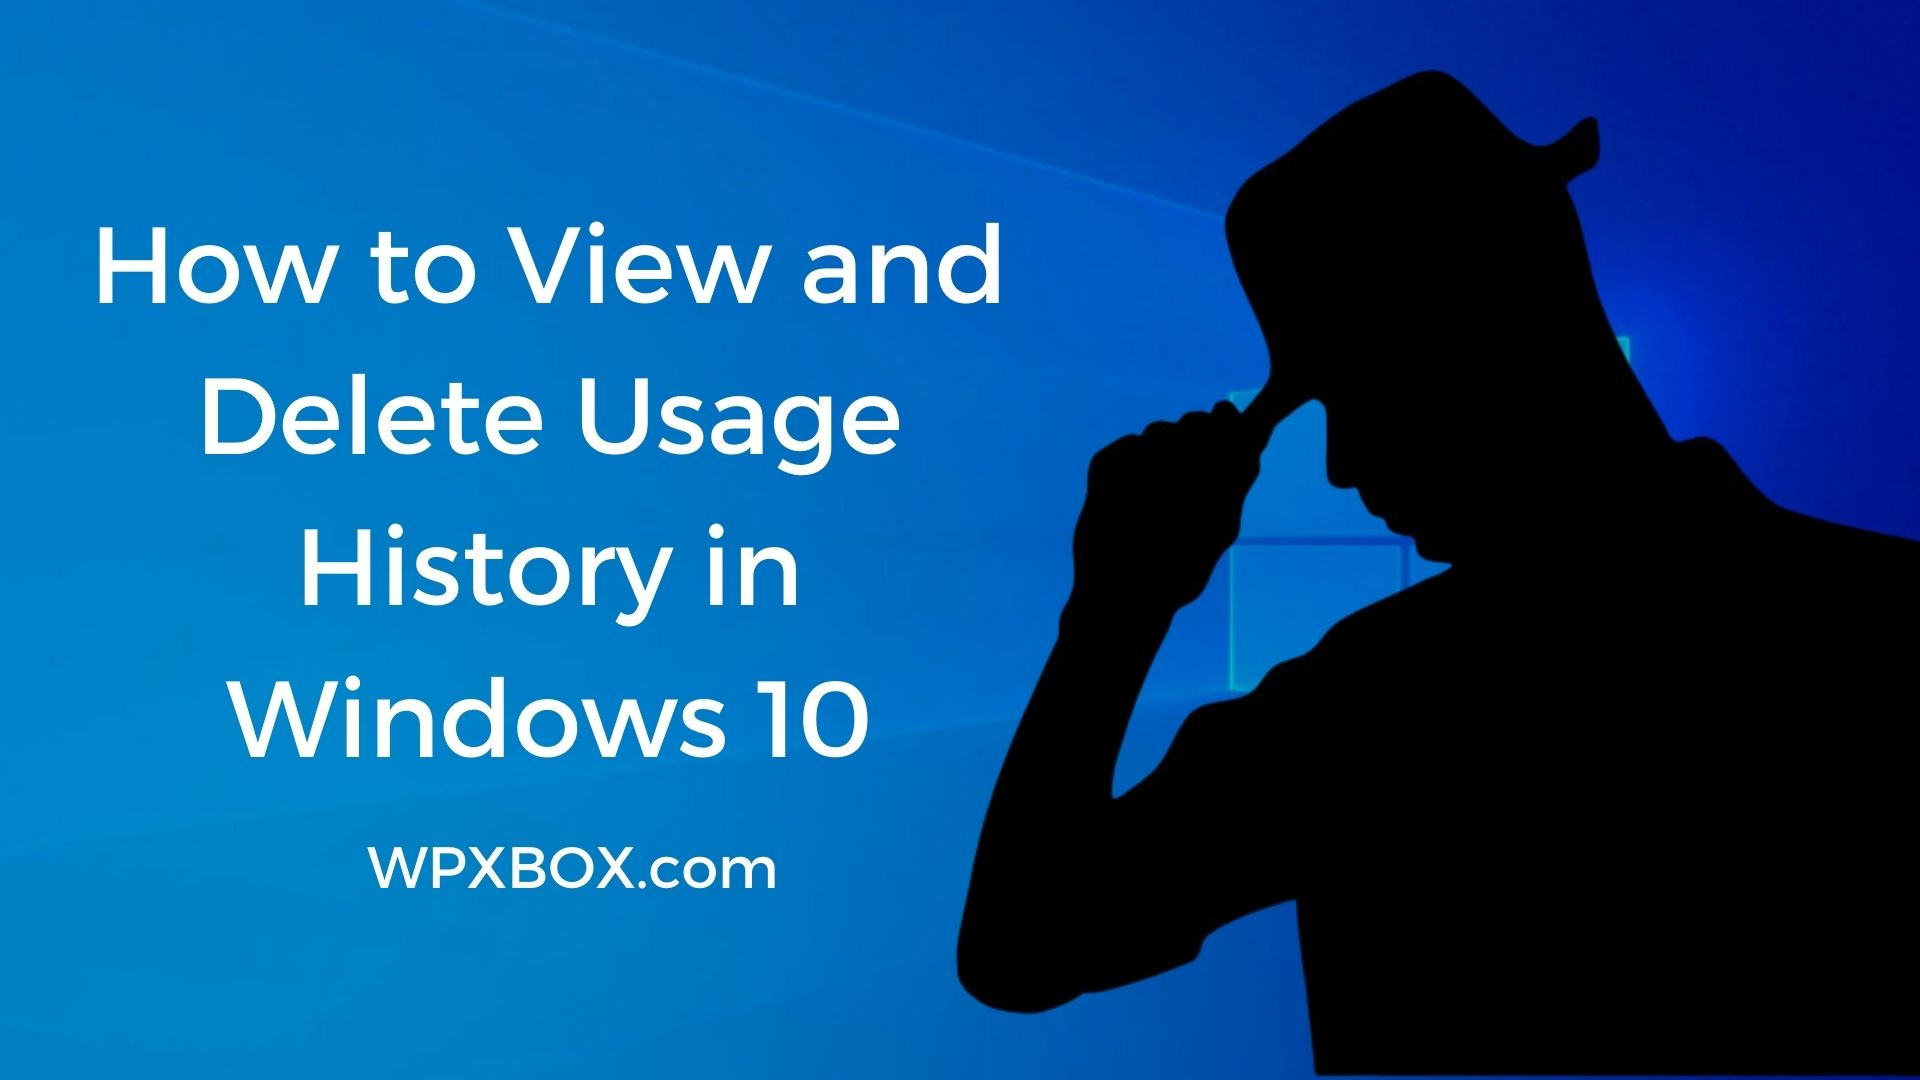 How To Delete Usage History in Windows 10